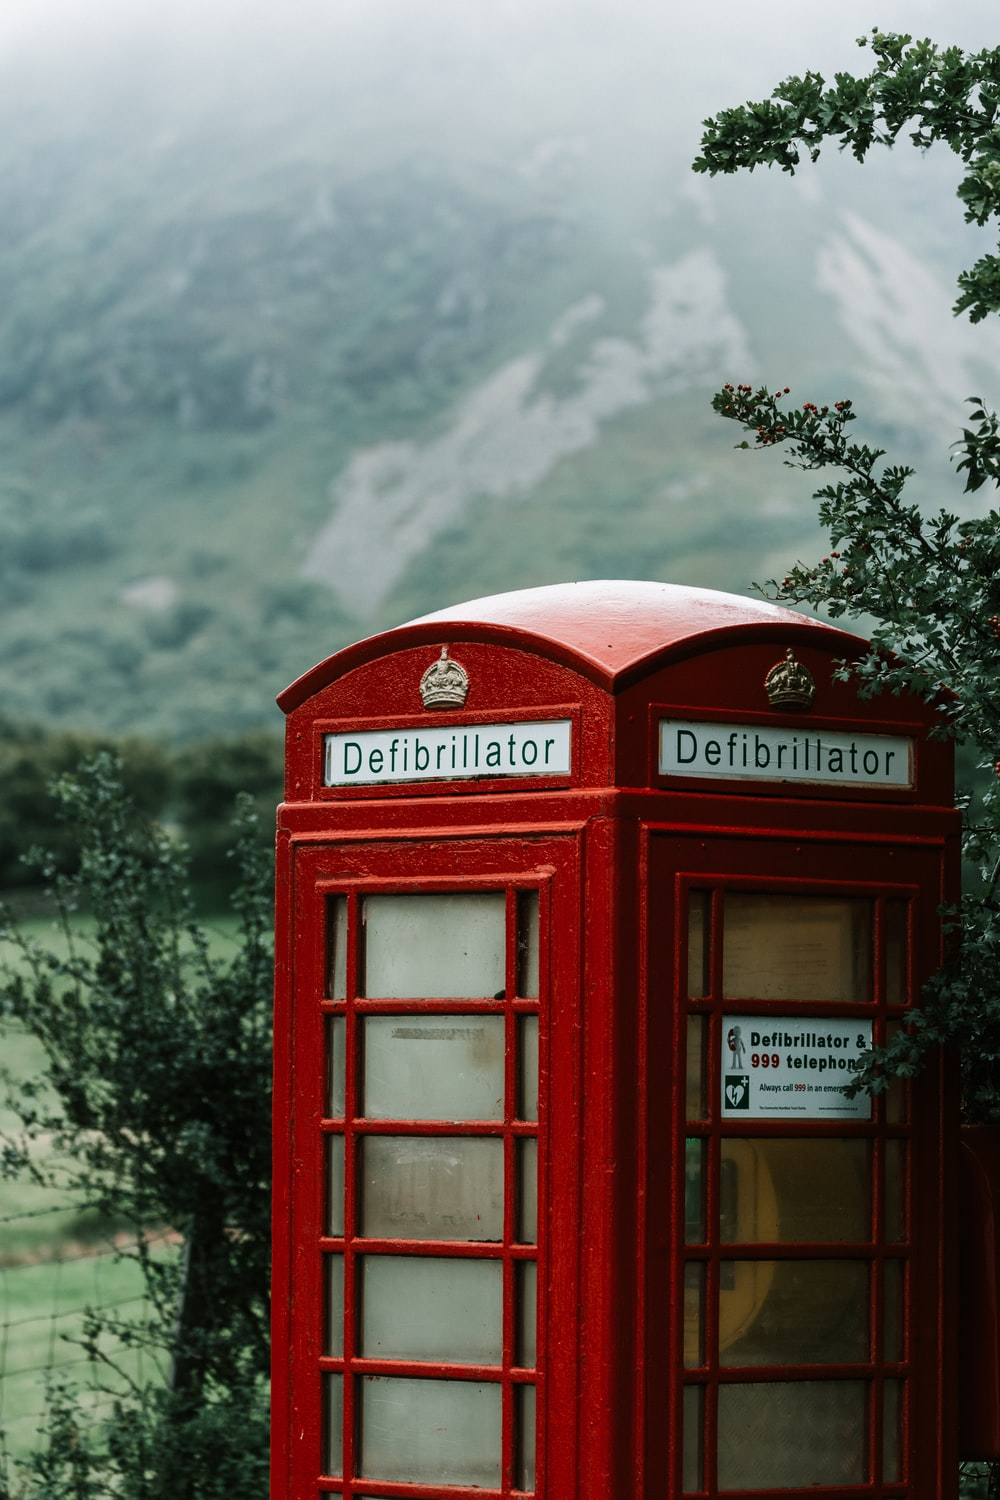 red telephone booth near green tree under white clouds during daytime